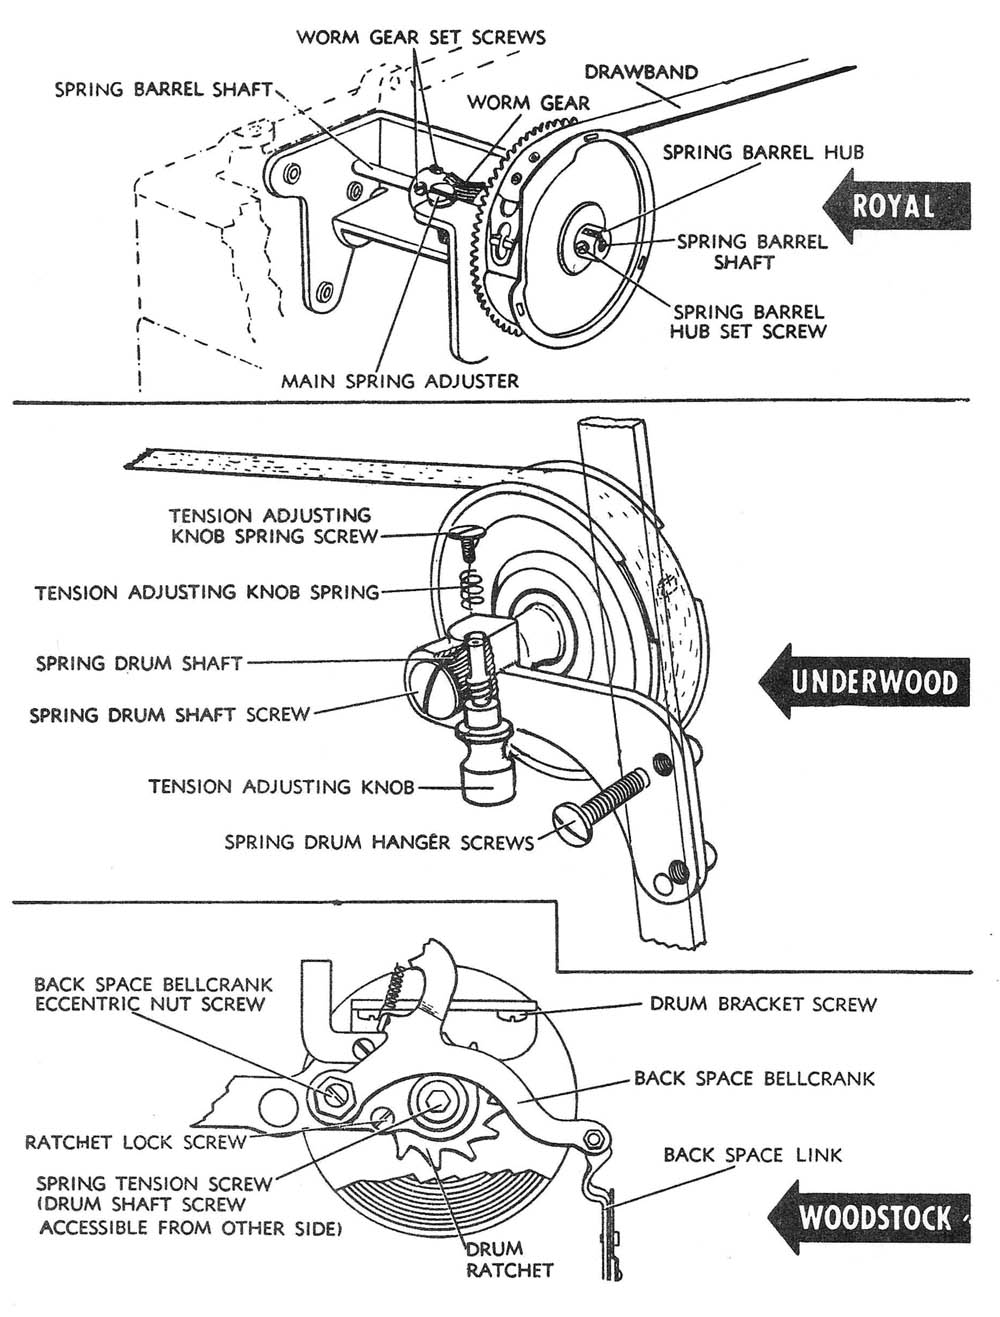 manual typewriter parts diagram sketch coloring page